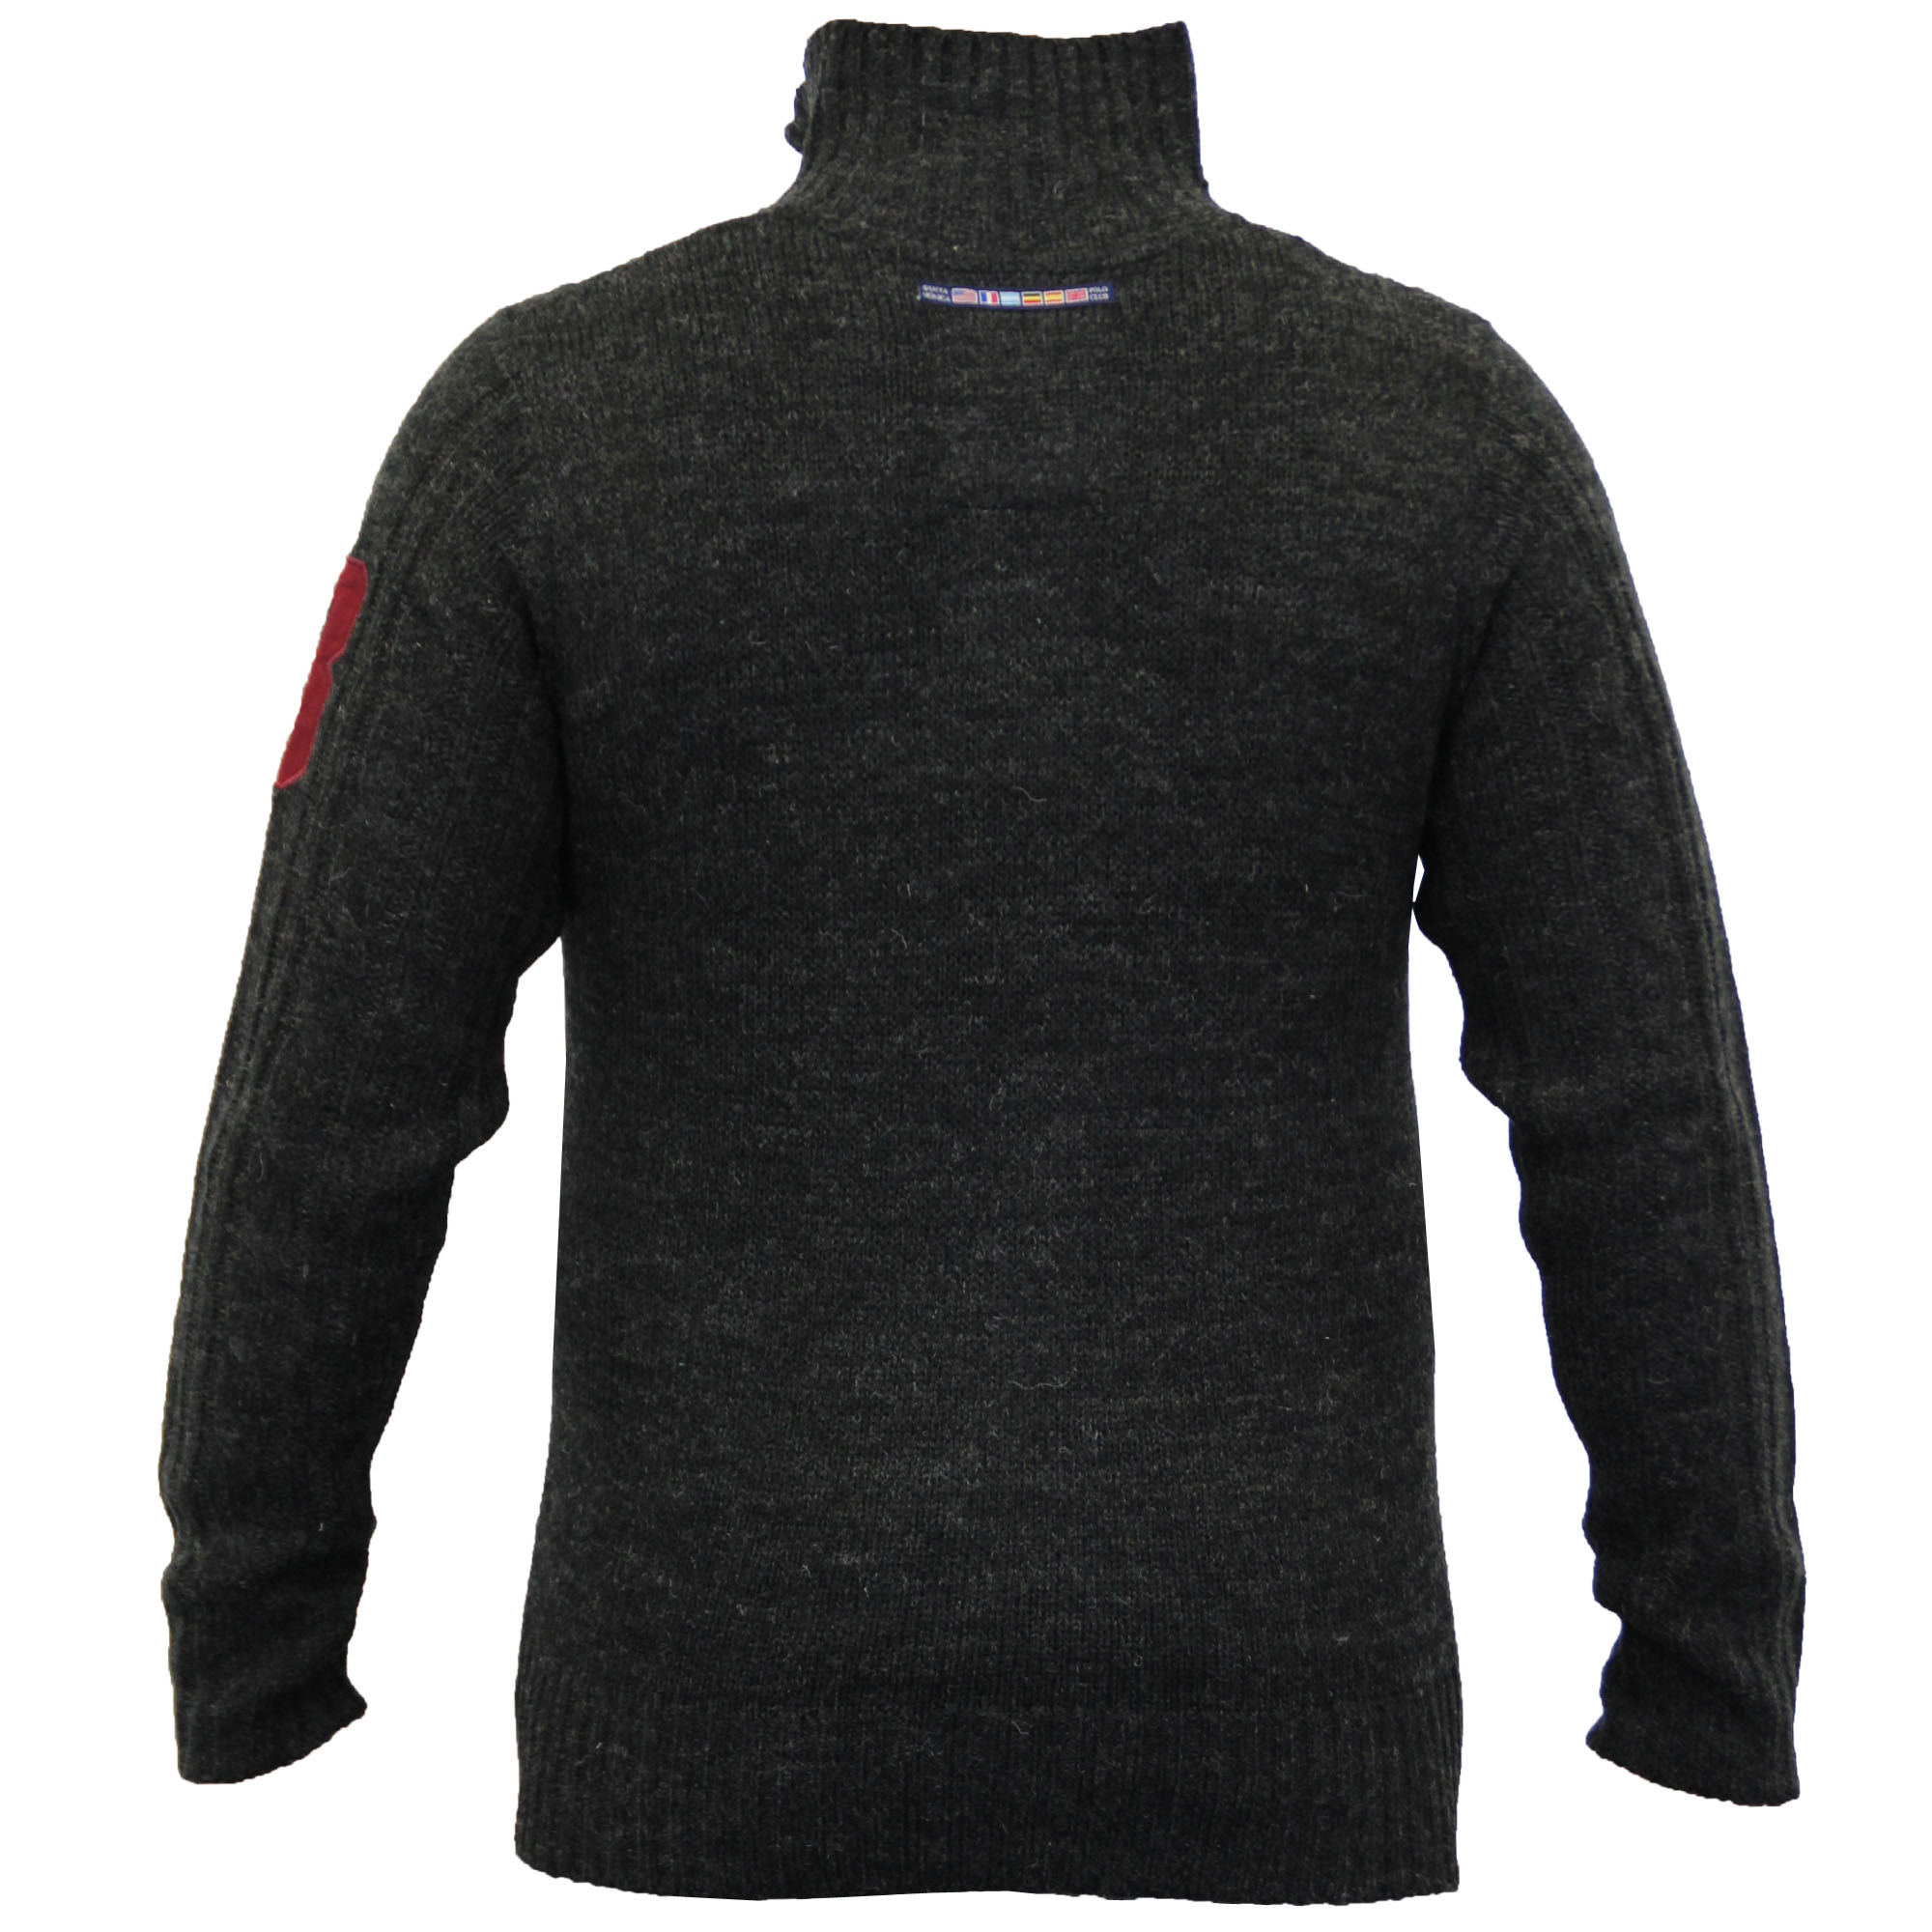 Mens-Wool-Mix-Jumpers-Santa-Monica-Cable-Knitted-Jacquard-Sweater-Pullover-New thumbnail 4